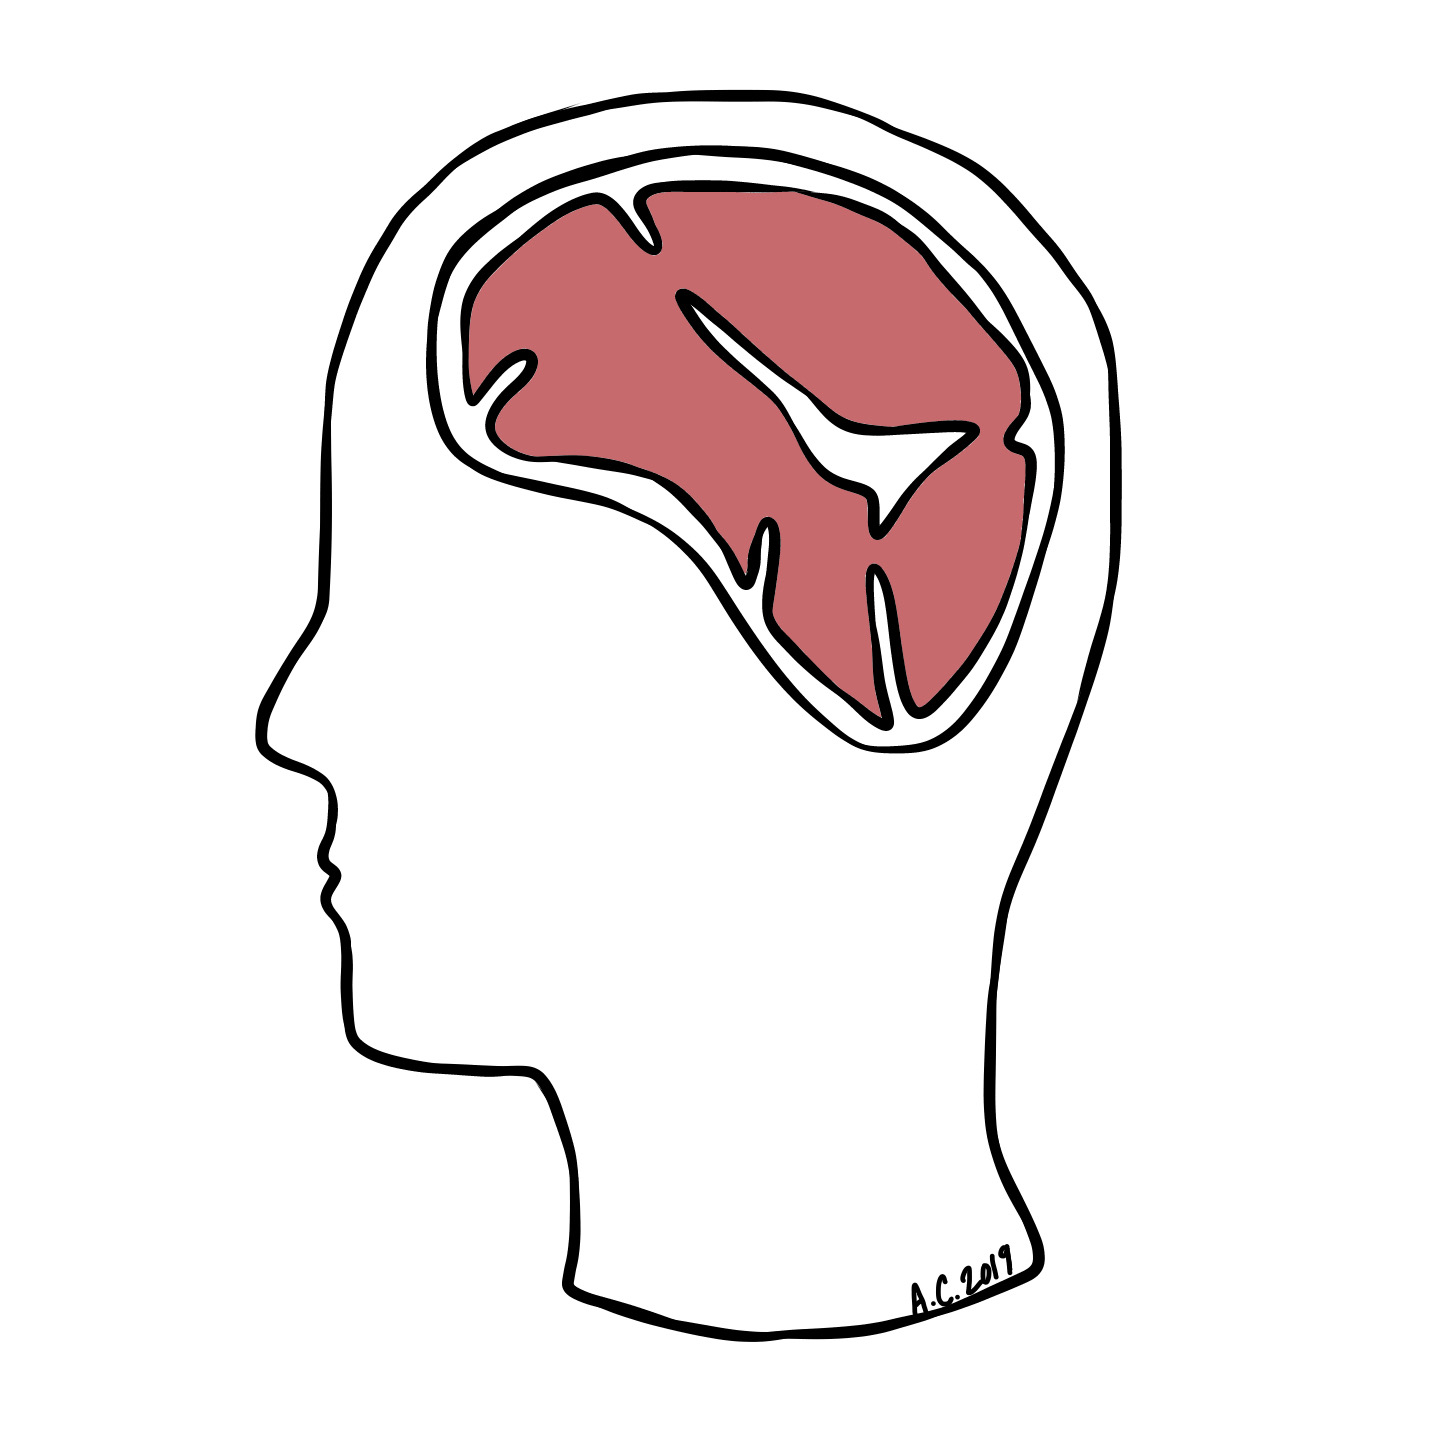 A human's brain replaced with steak, illustrated by the author.